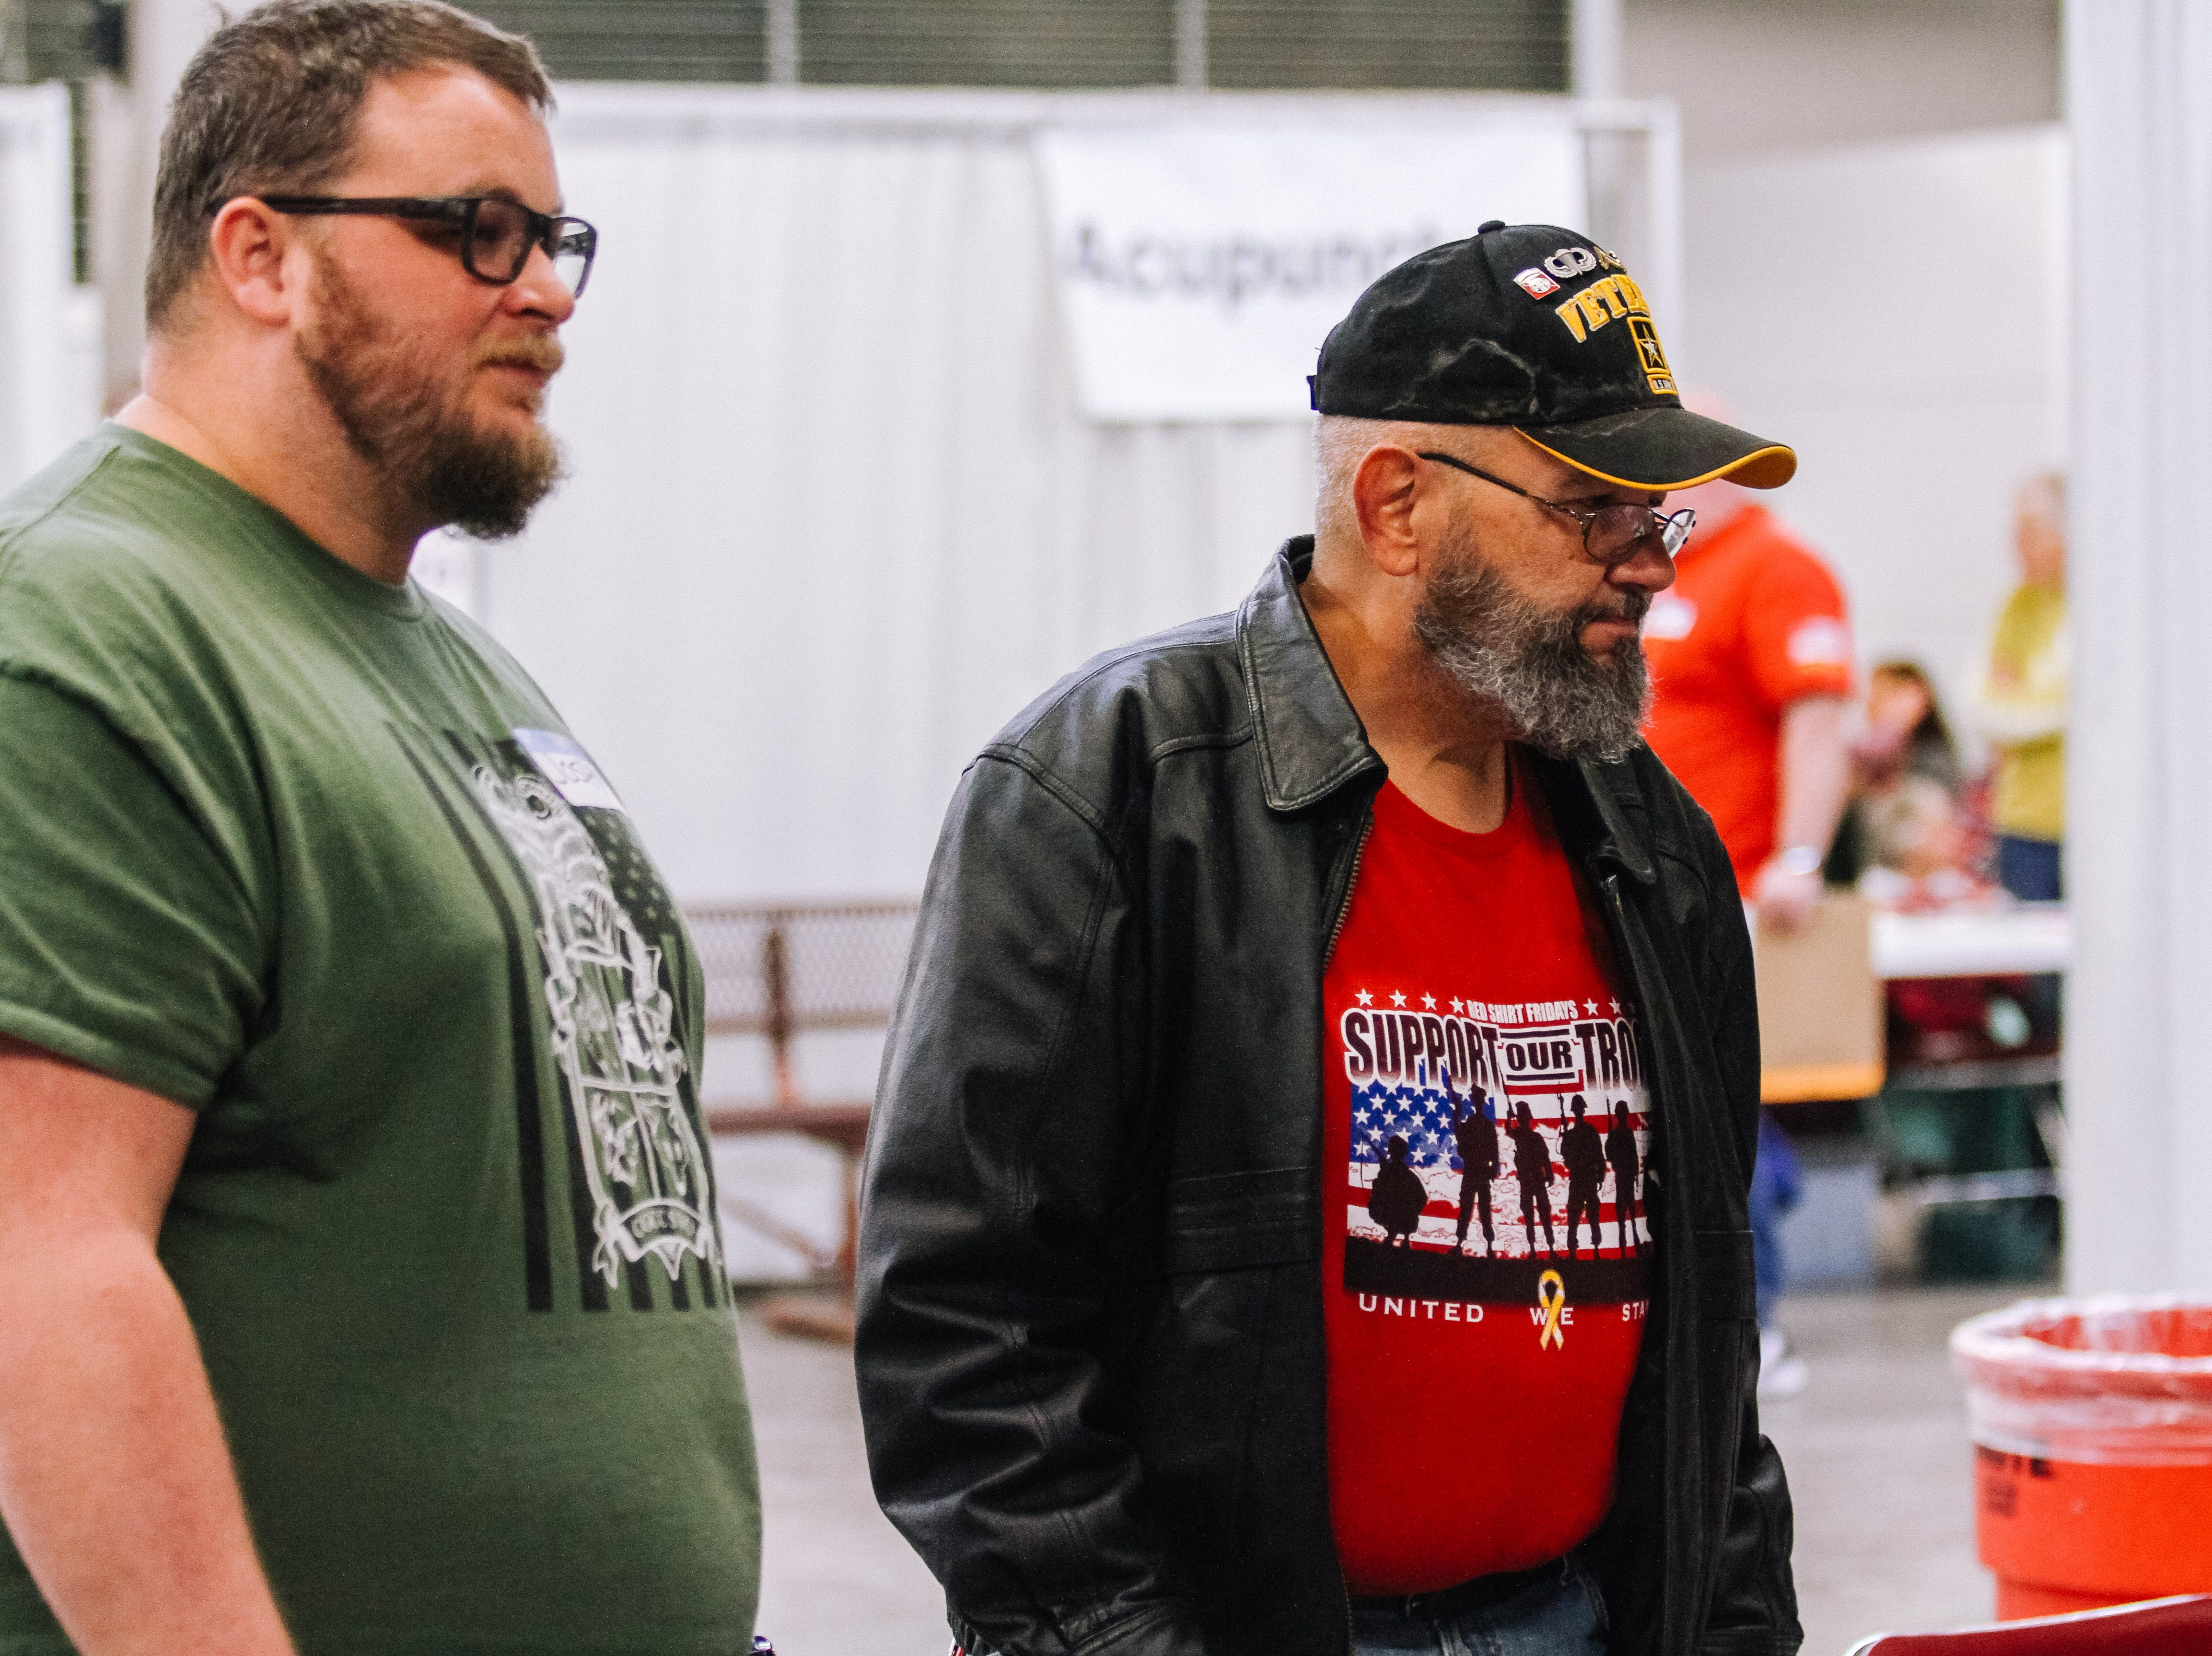 Army weteran Jack Rynes Jr. stands in line to apply for glasses with volunteer Josh Downing at the 2019 Veterans StandDown at the Arizona State Fairgrounds in Phoenix on Jan. 25, 2019.